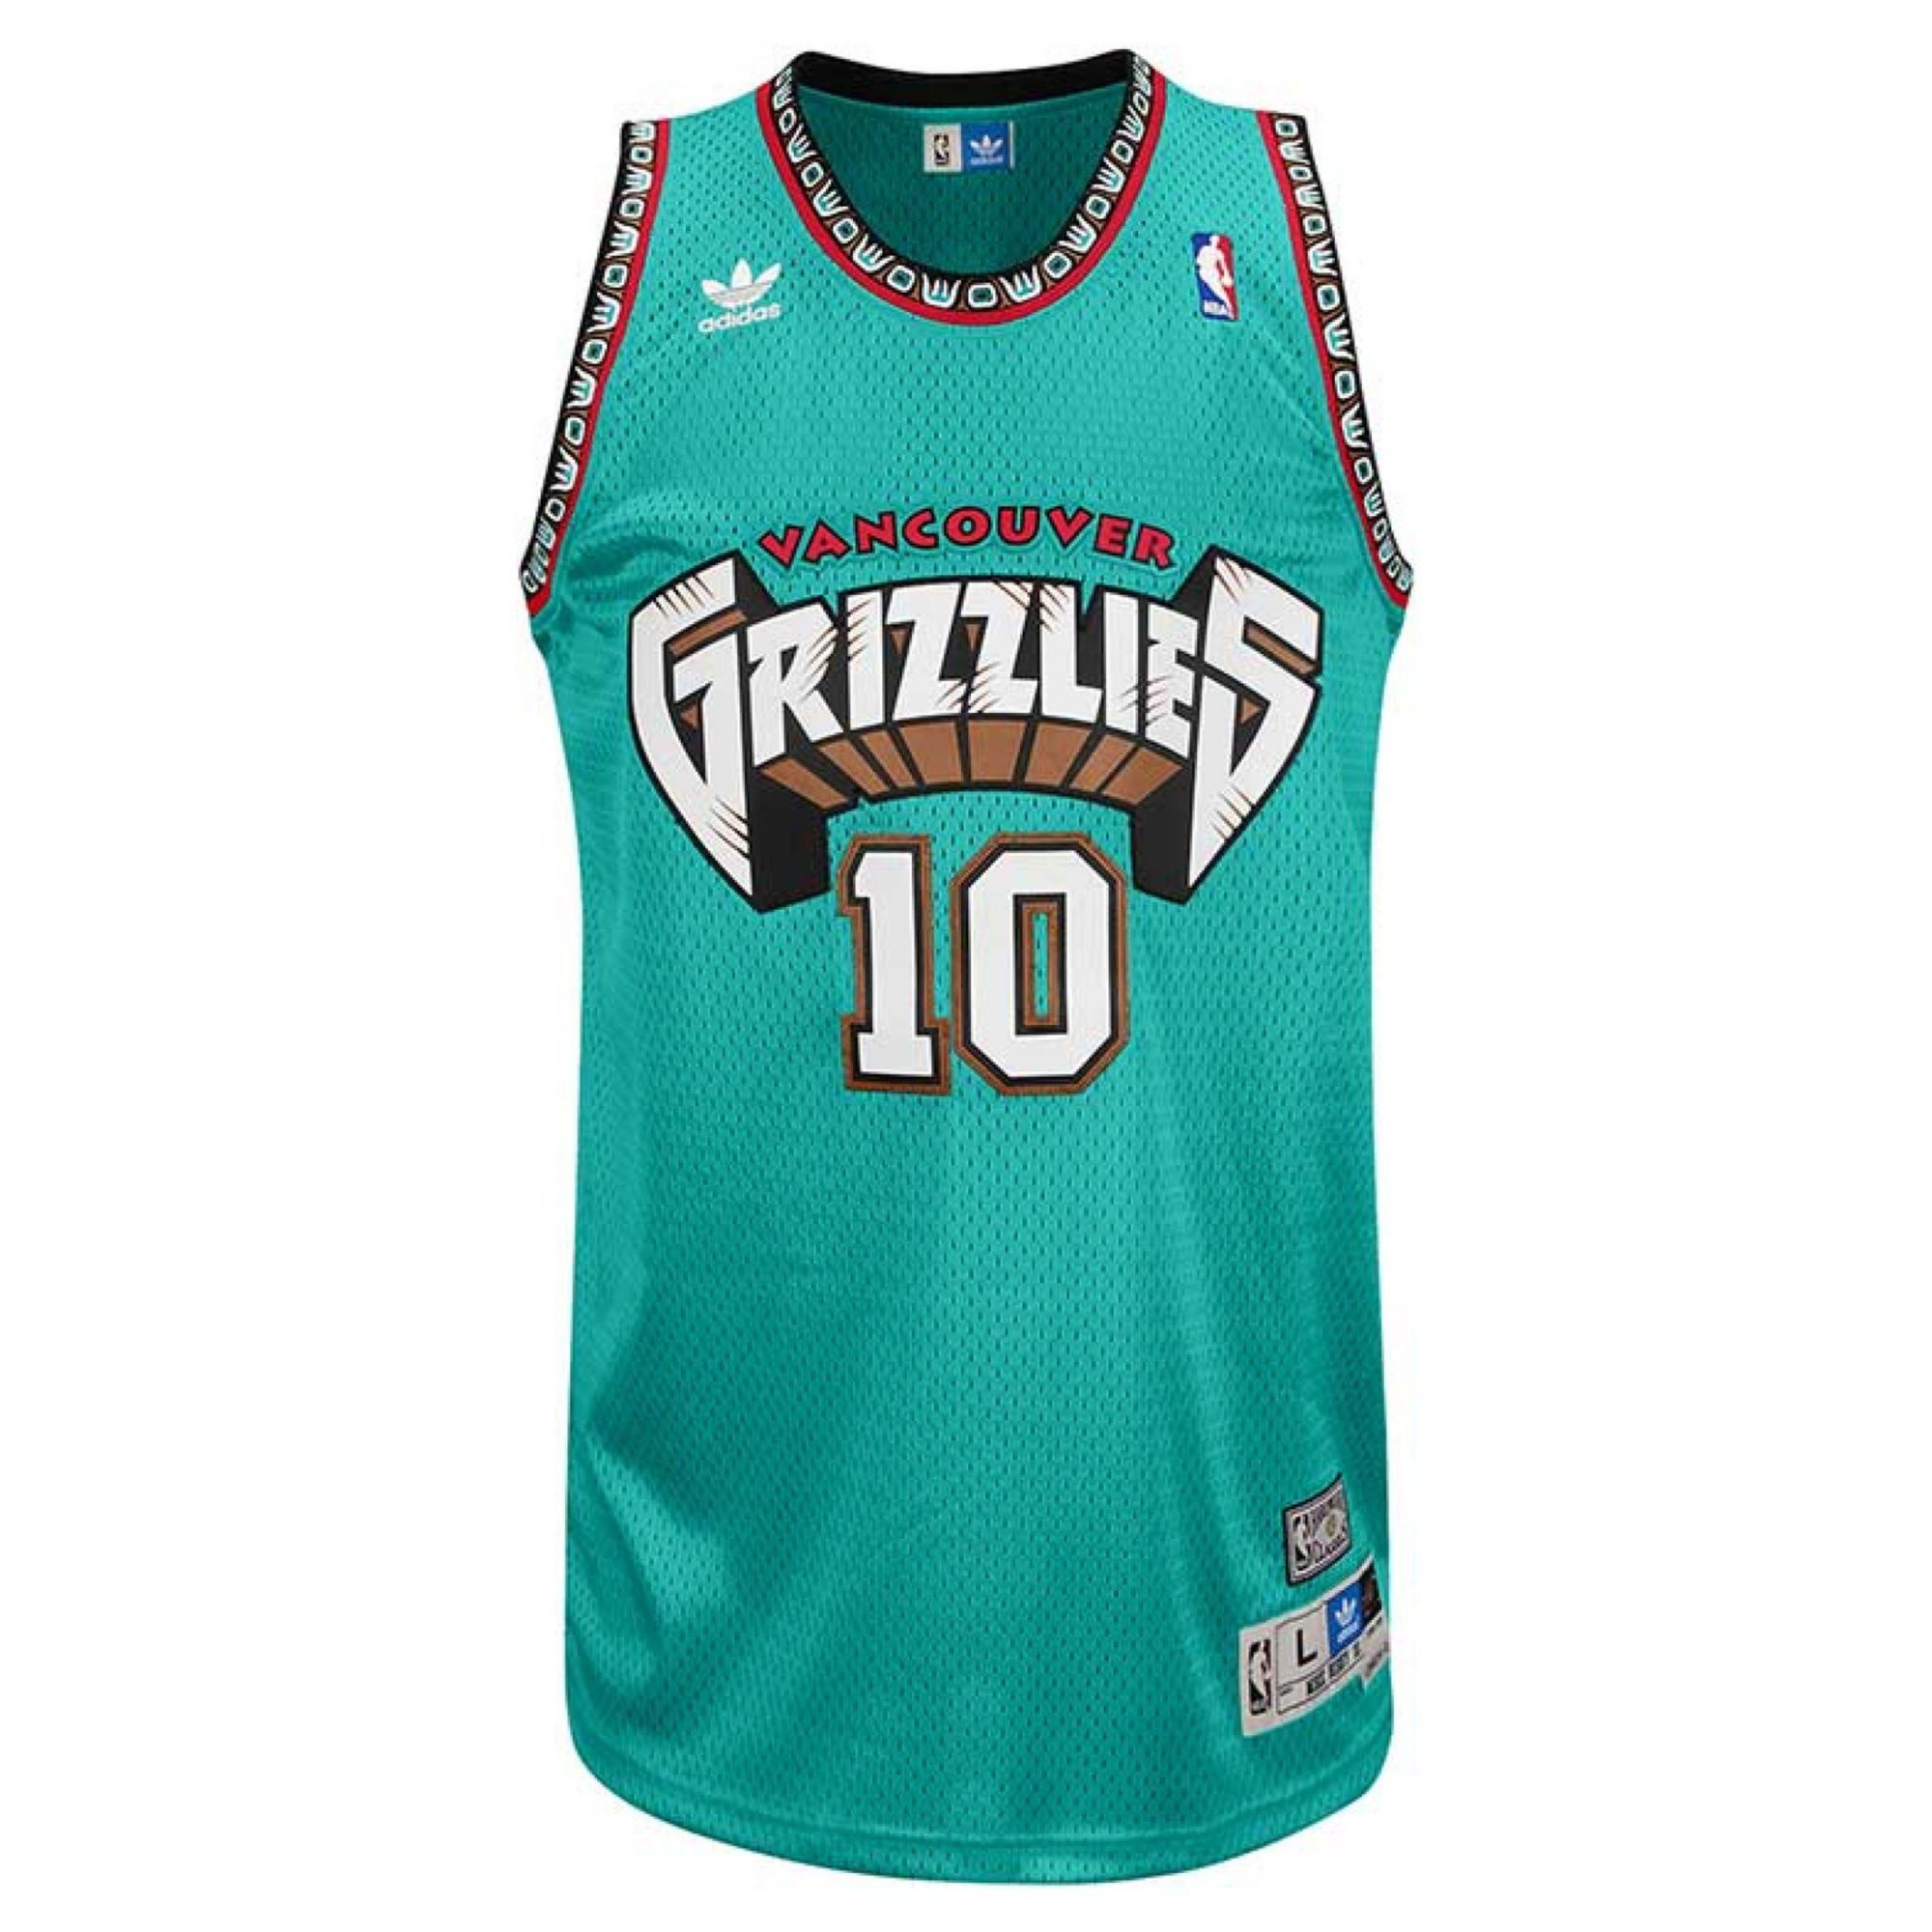 6a4f7b72ac66 Lyst - adidas Mens Mike Bibby Vancouver Grizzlies Retired Player ...